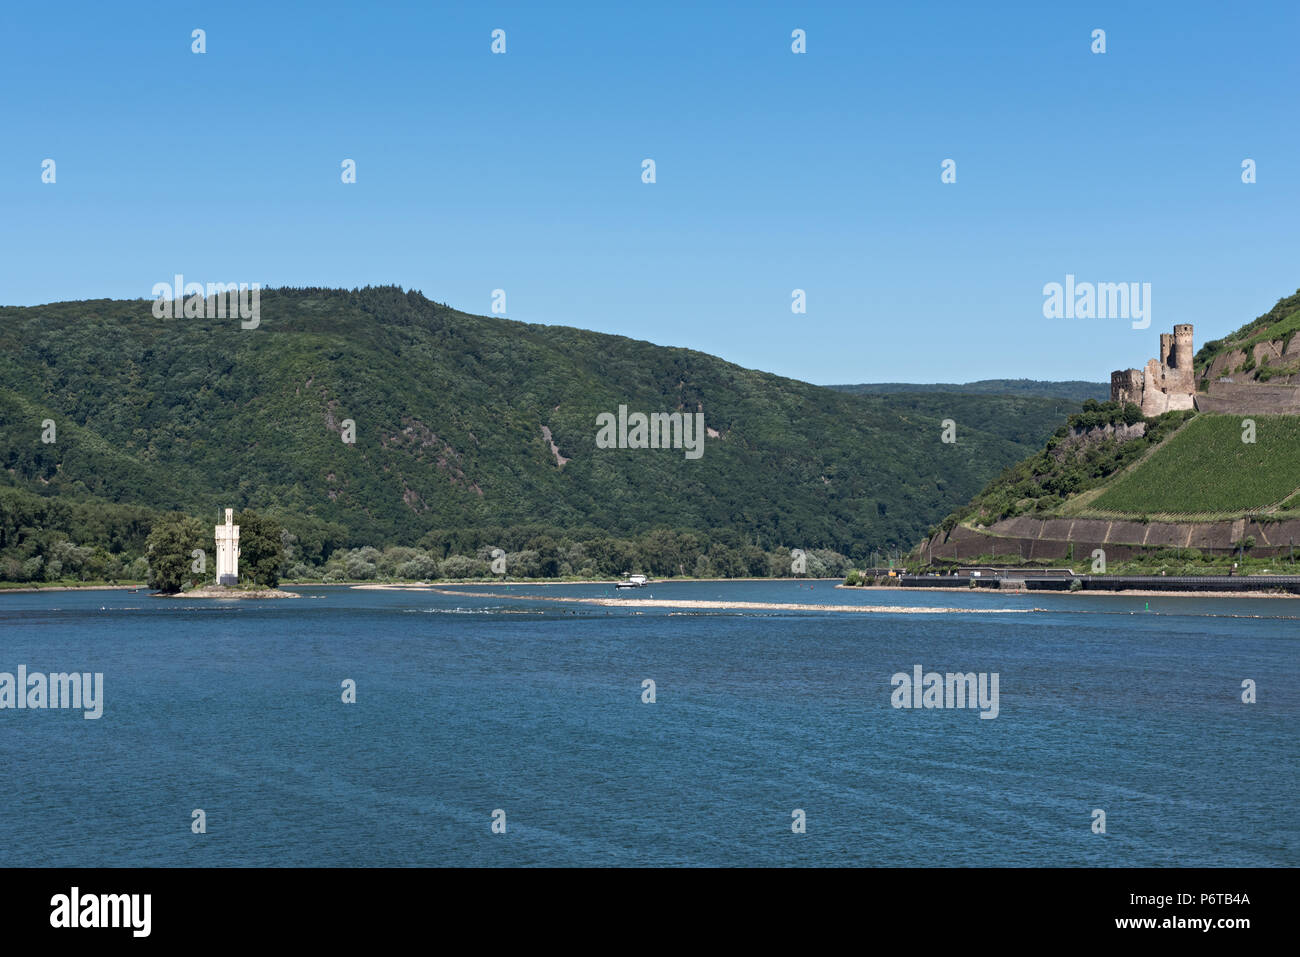 Panoramic view over the rhine river to the mauseturm and Ehrenfels Castle, Germany - Stock Image